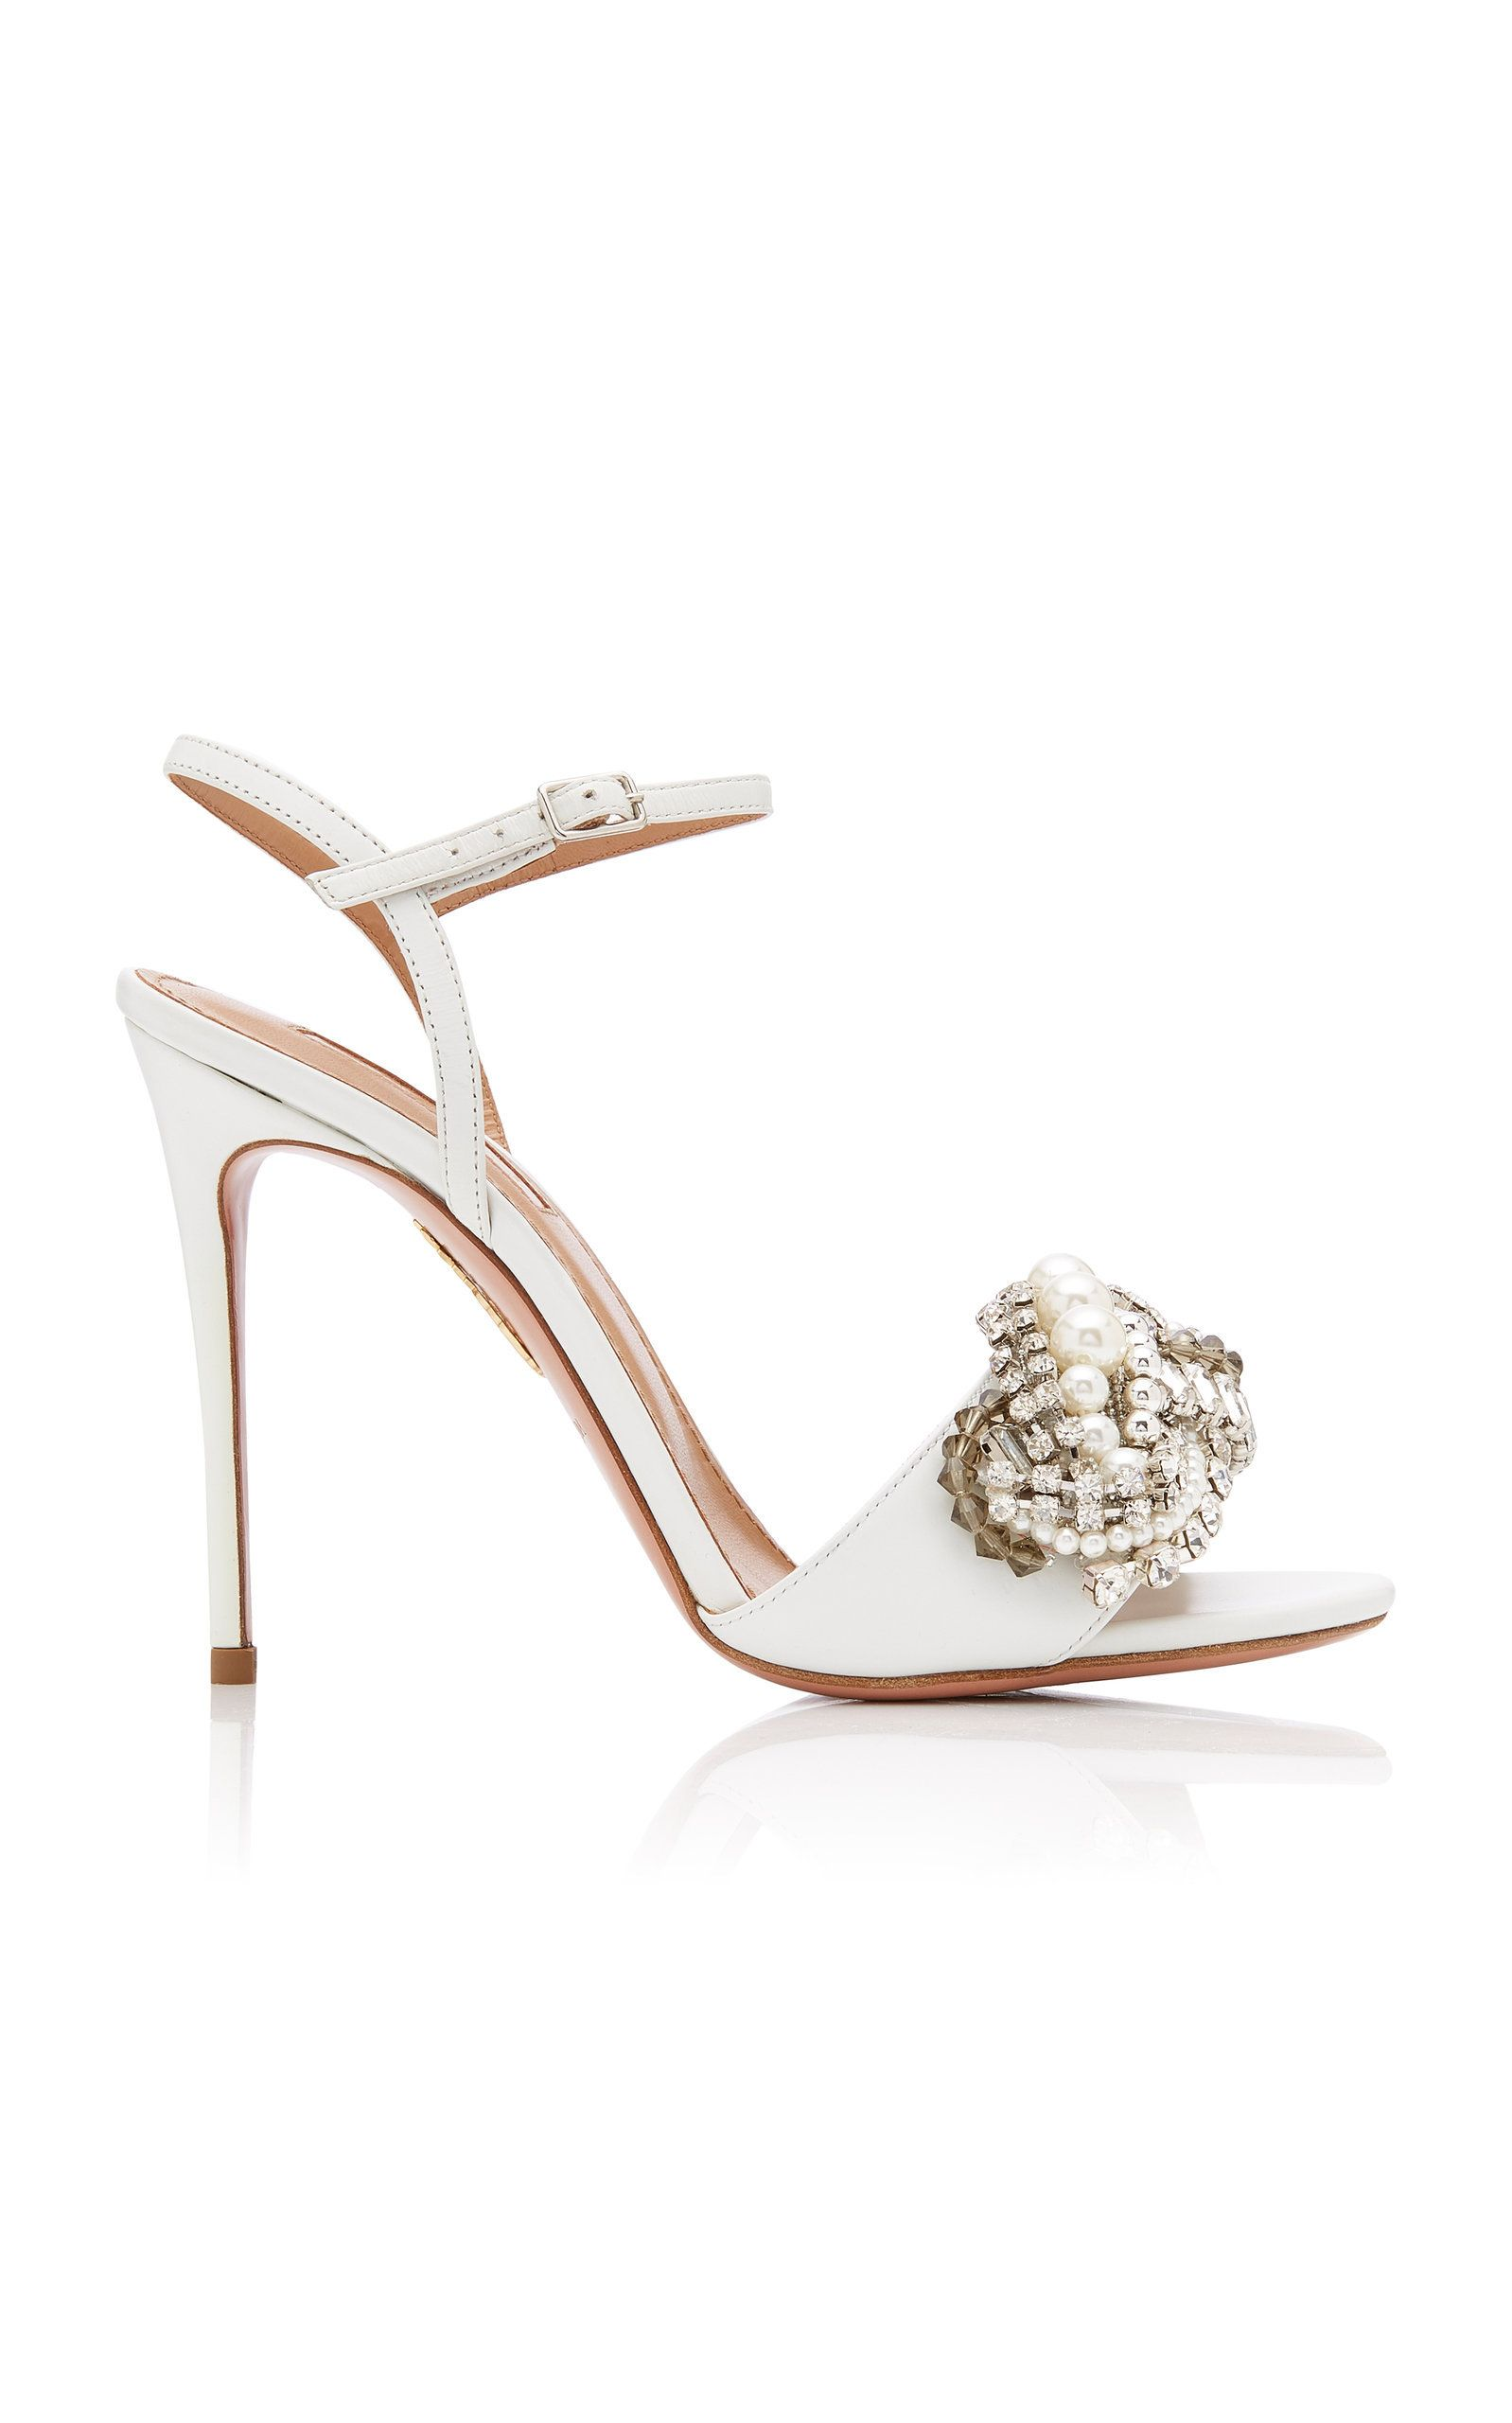 5328438b9 Wild Chain Crystal and Faux Pearl-Embellished Leather Sandals by AQUAZZURA  Now Available on Moda Operandi